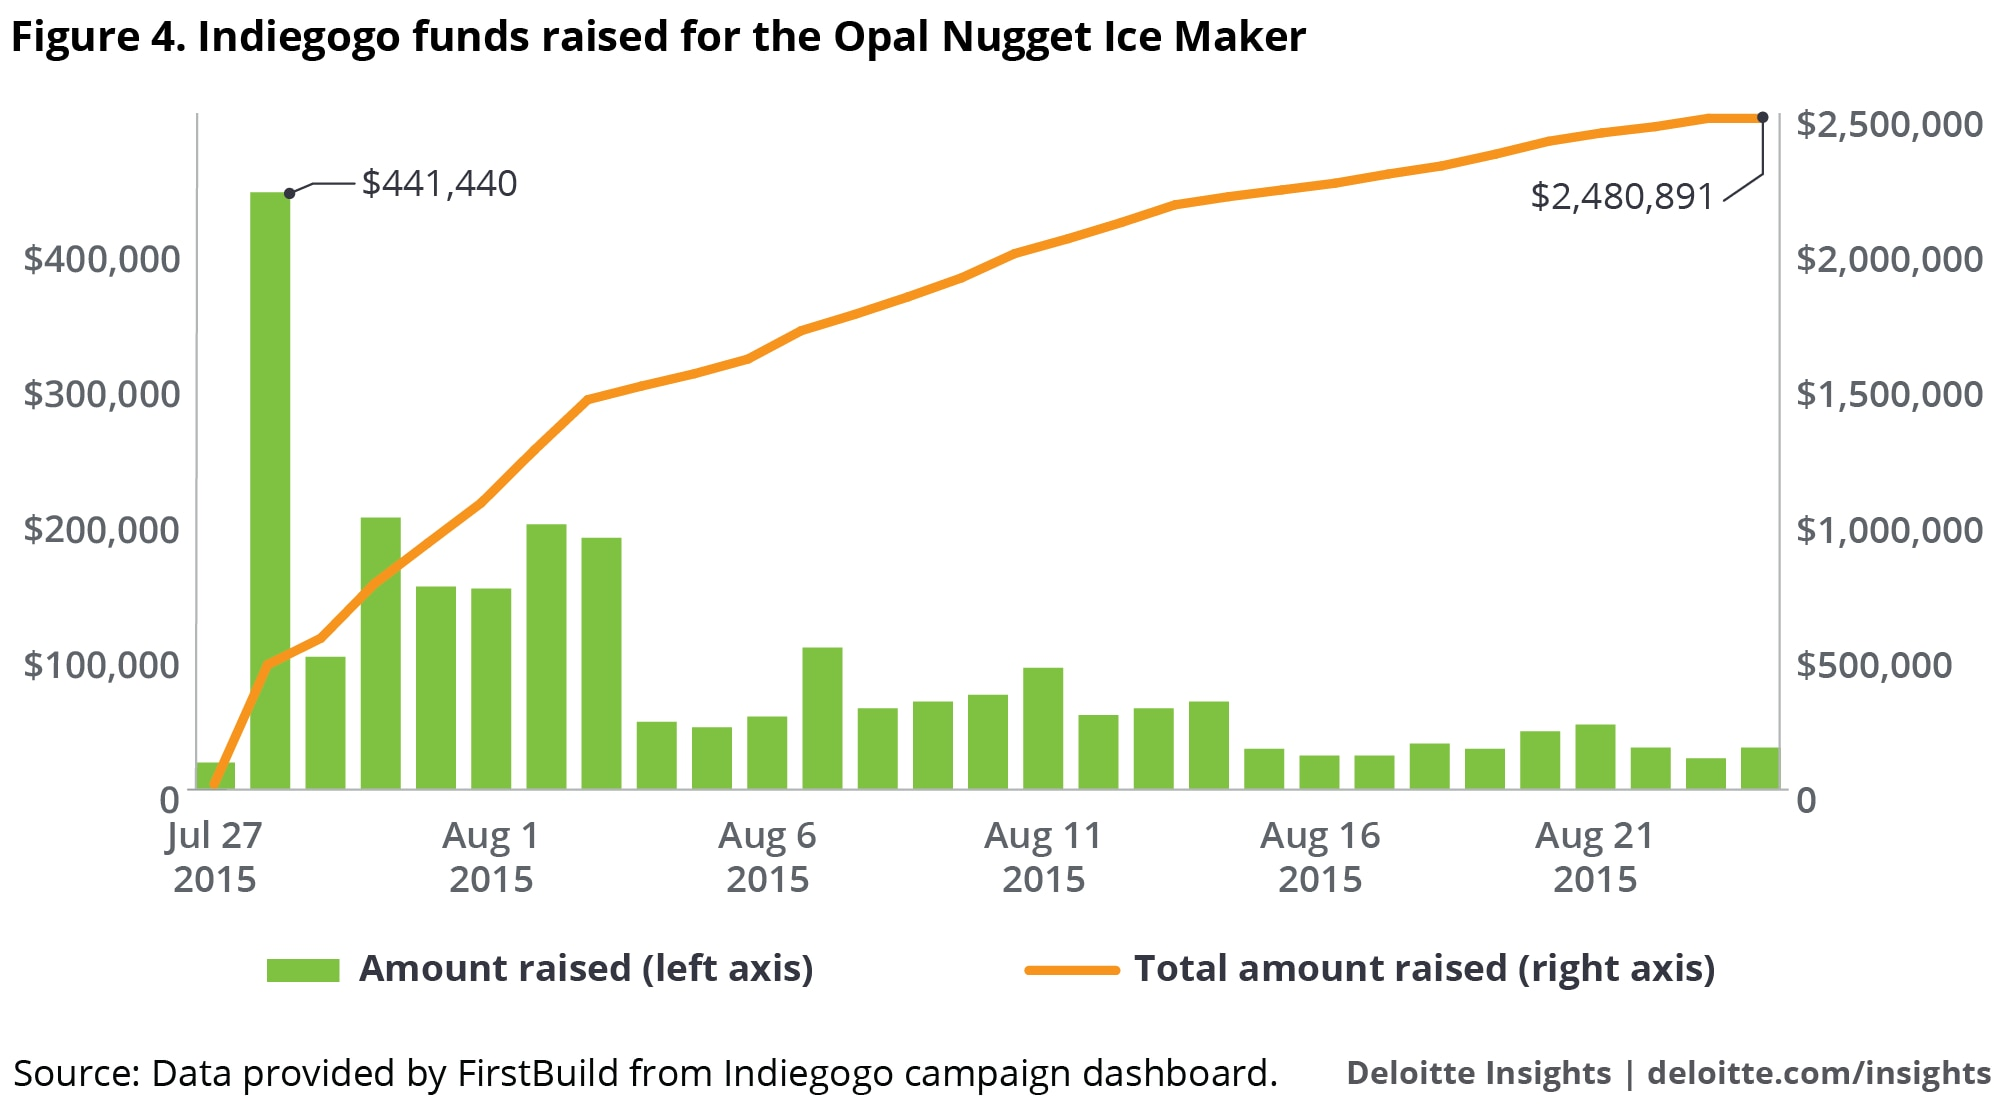 Figure 4. Indiegogo funds raised for the Opal Nugget Ice Maker